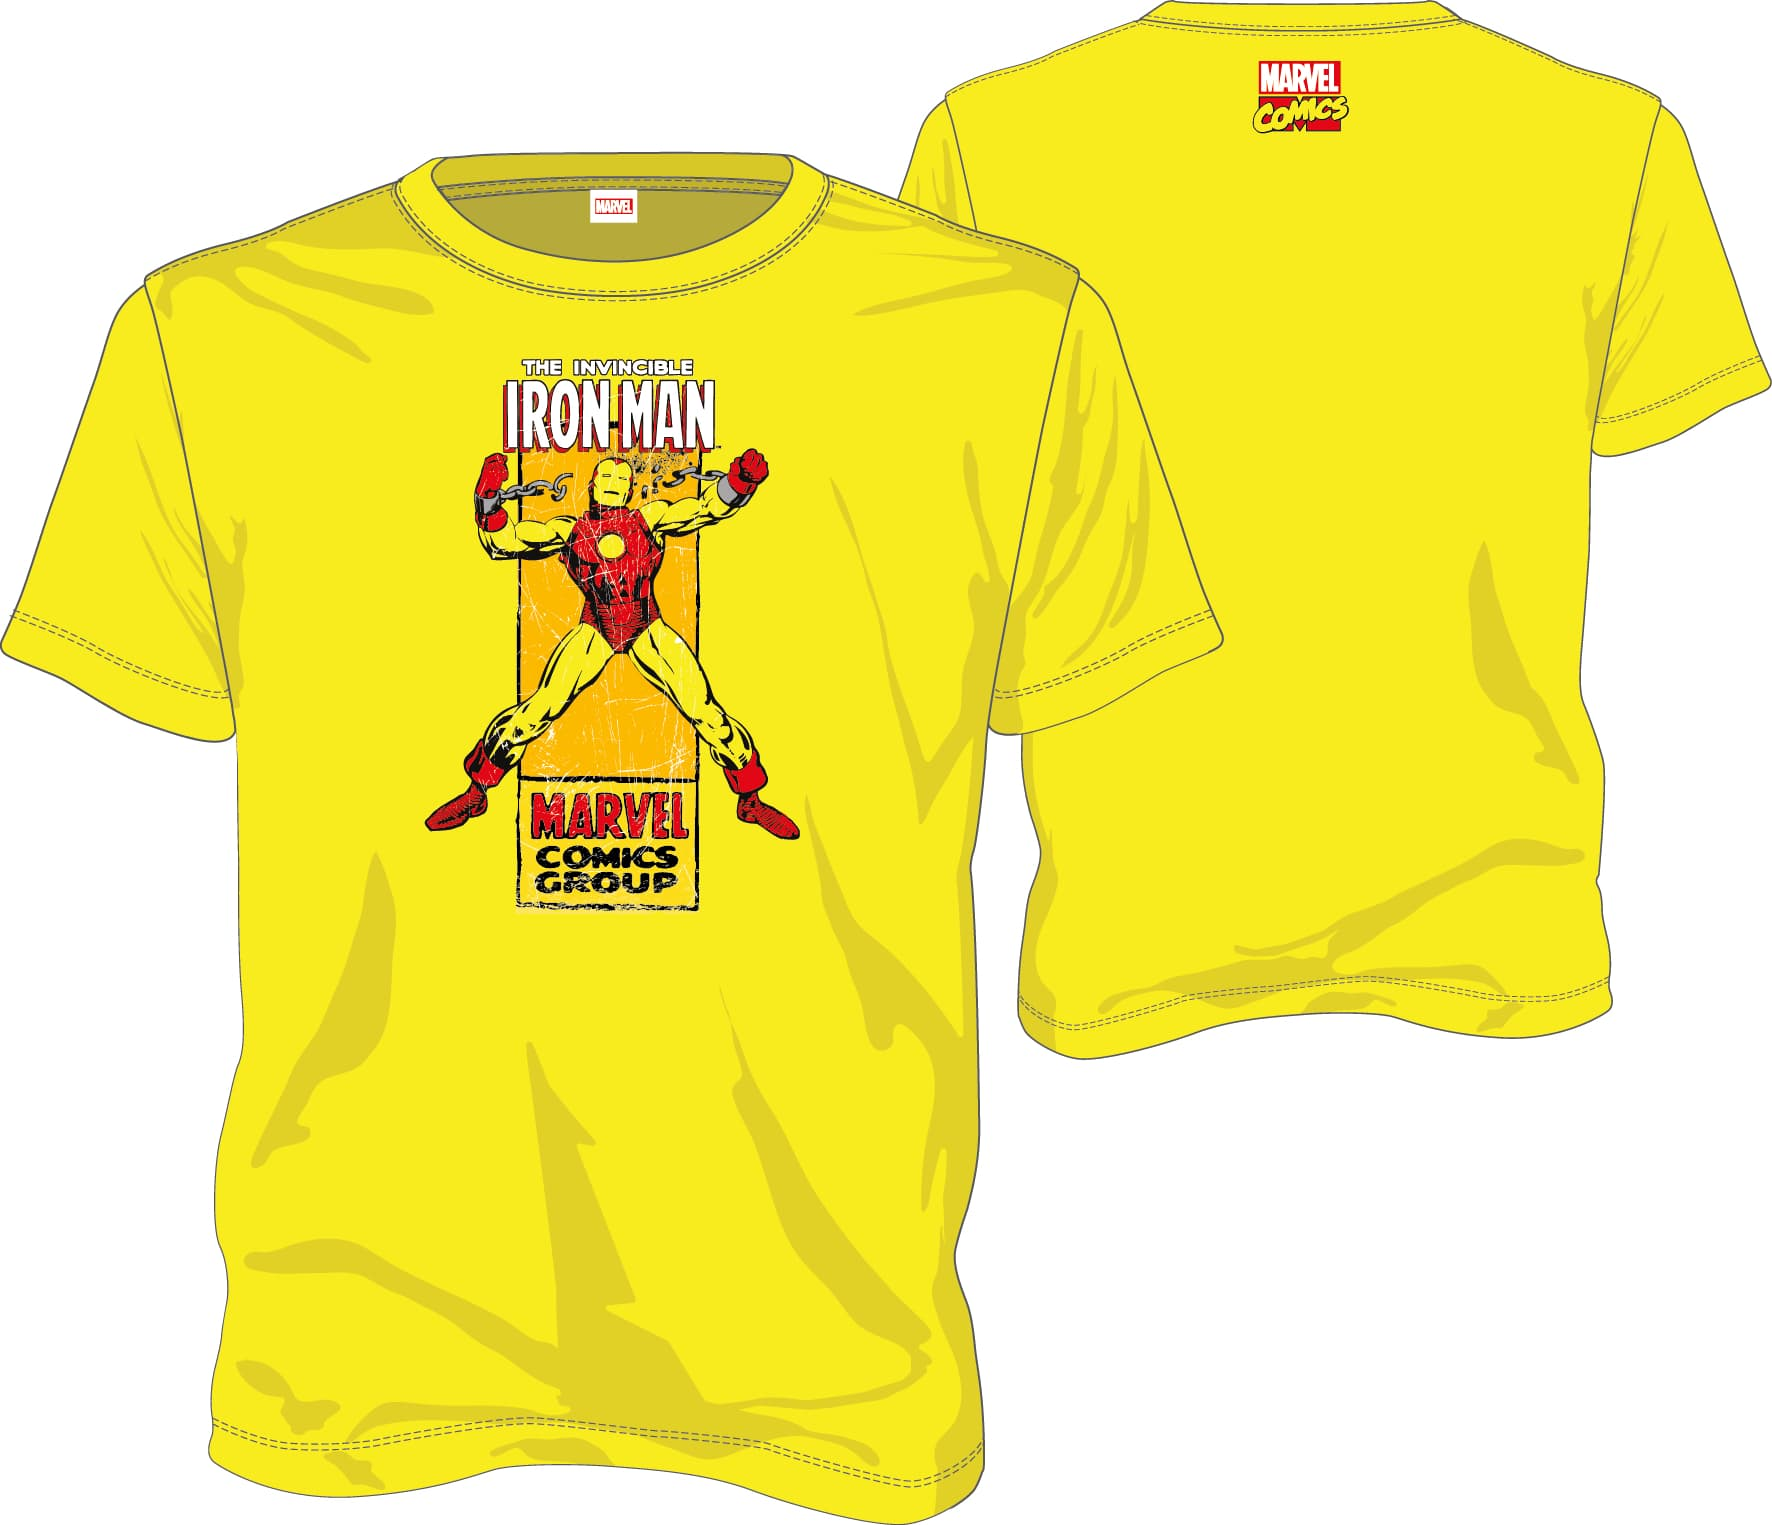 IRON MAN CAMISETA AMARILLA CHICO T-L MARVEL COMICS